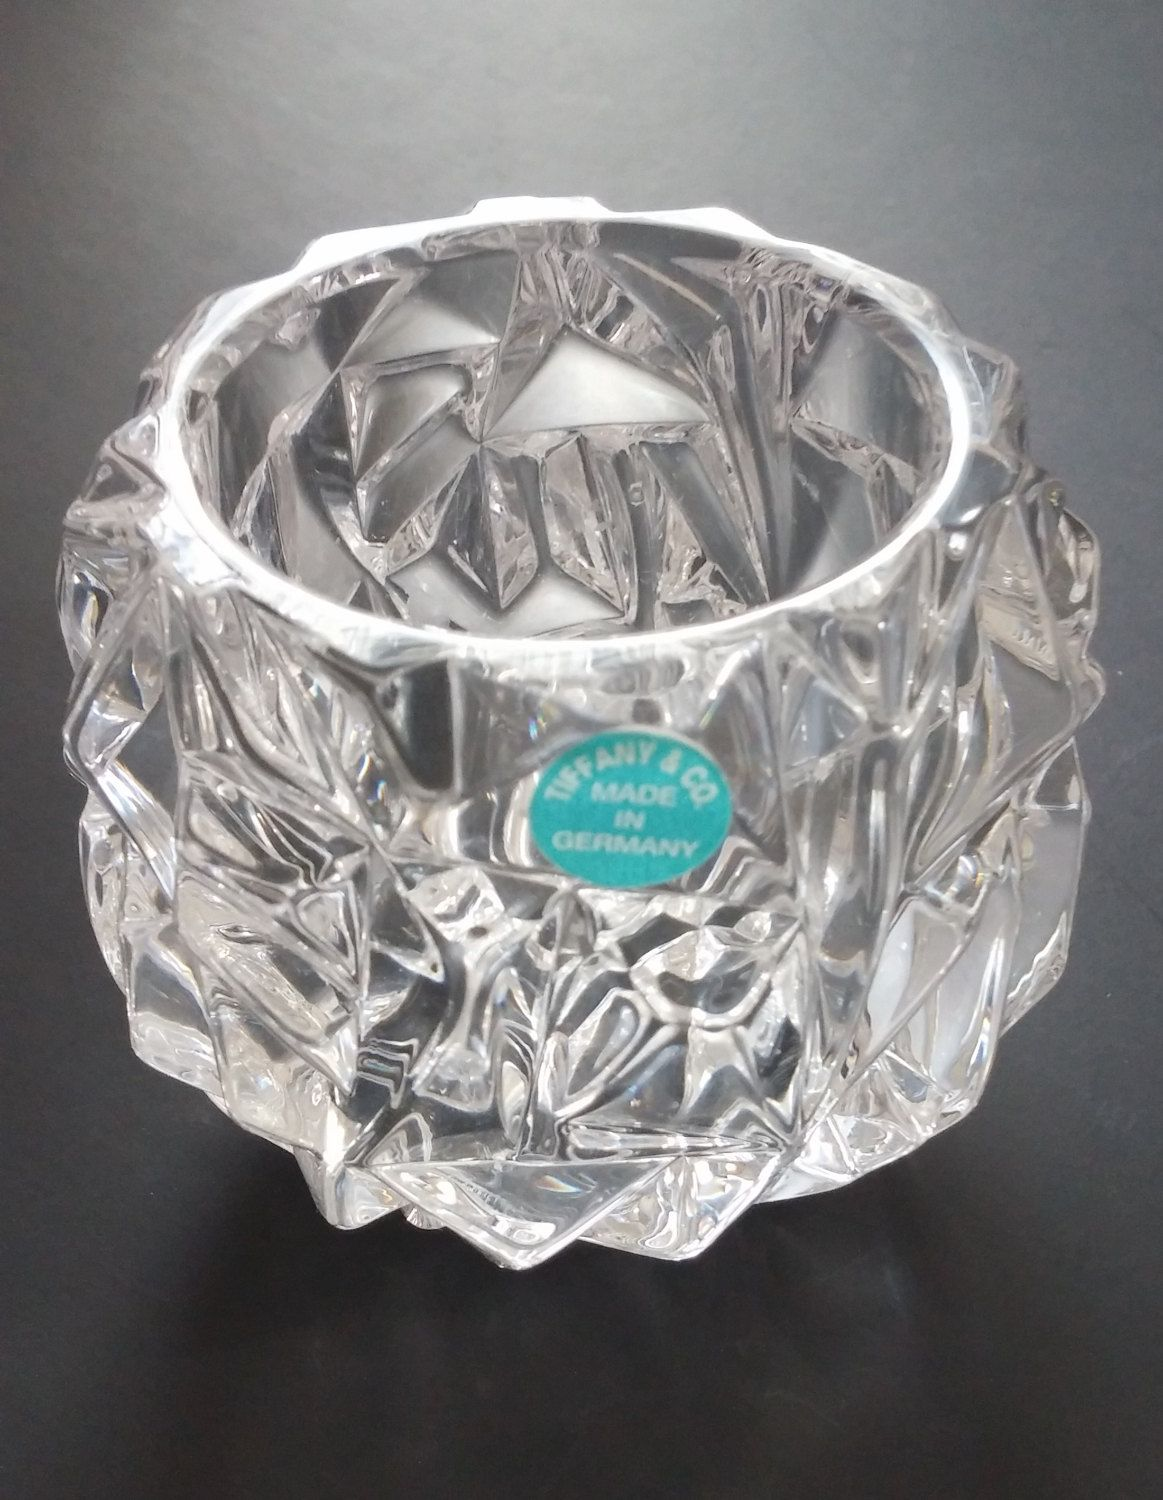 275035e9c194 Beautiful Tiffany and Co Crystal Rock Cut Votive Candle Holder ...